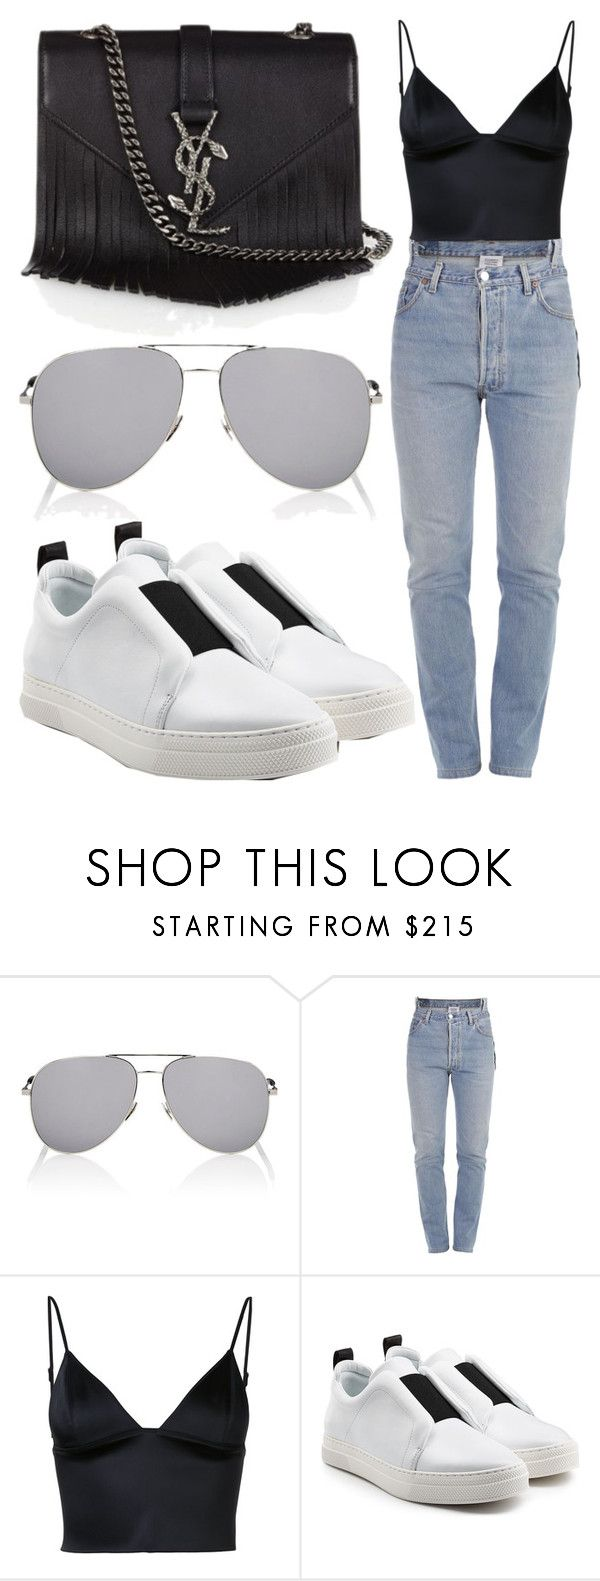 """""""Untitled #948"""" by clothyoulike ❤ liked on Polyvore featuring Yves Saint Laurent, Vetements, T By Alexander Wang and Pierre Hardy"""